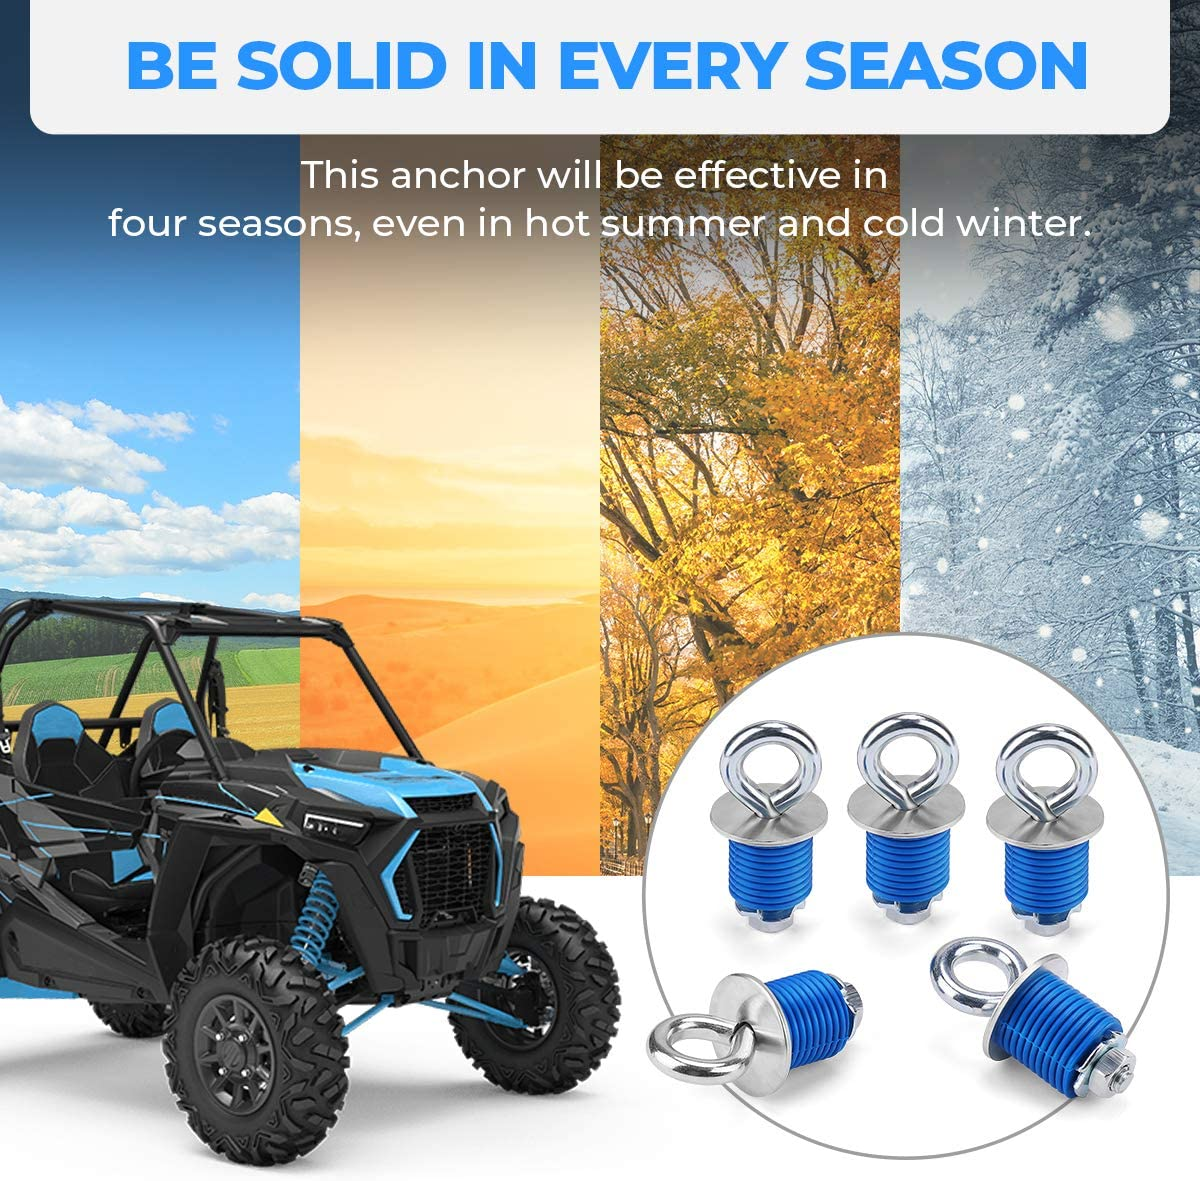 Do Not Fit Ranger or General kemimoto ATV UTV Anchors 900 1000 XP Turbo ACE Sportsman /— Blue Up to RZR 2020 1 Inch Anchors Compatible with Polaris Lock /& Ride RZR Set of 5